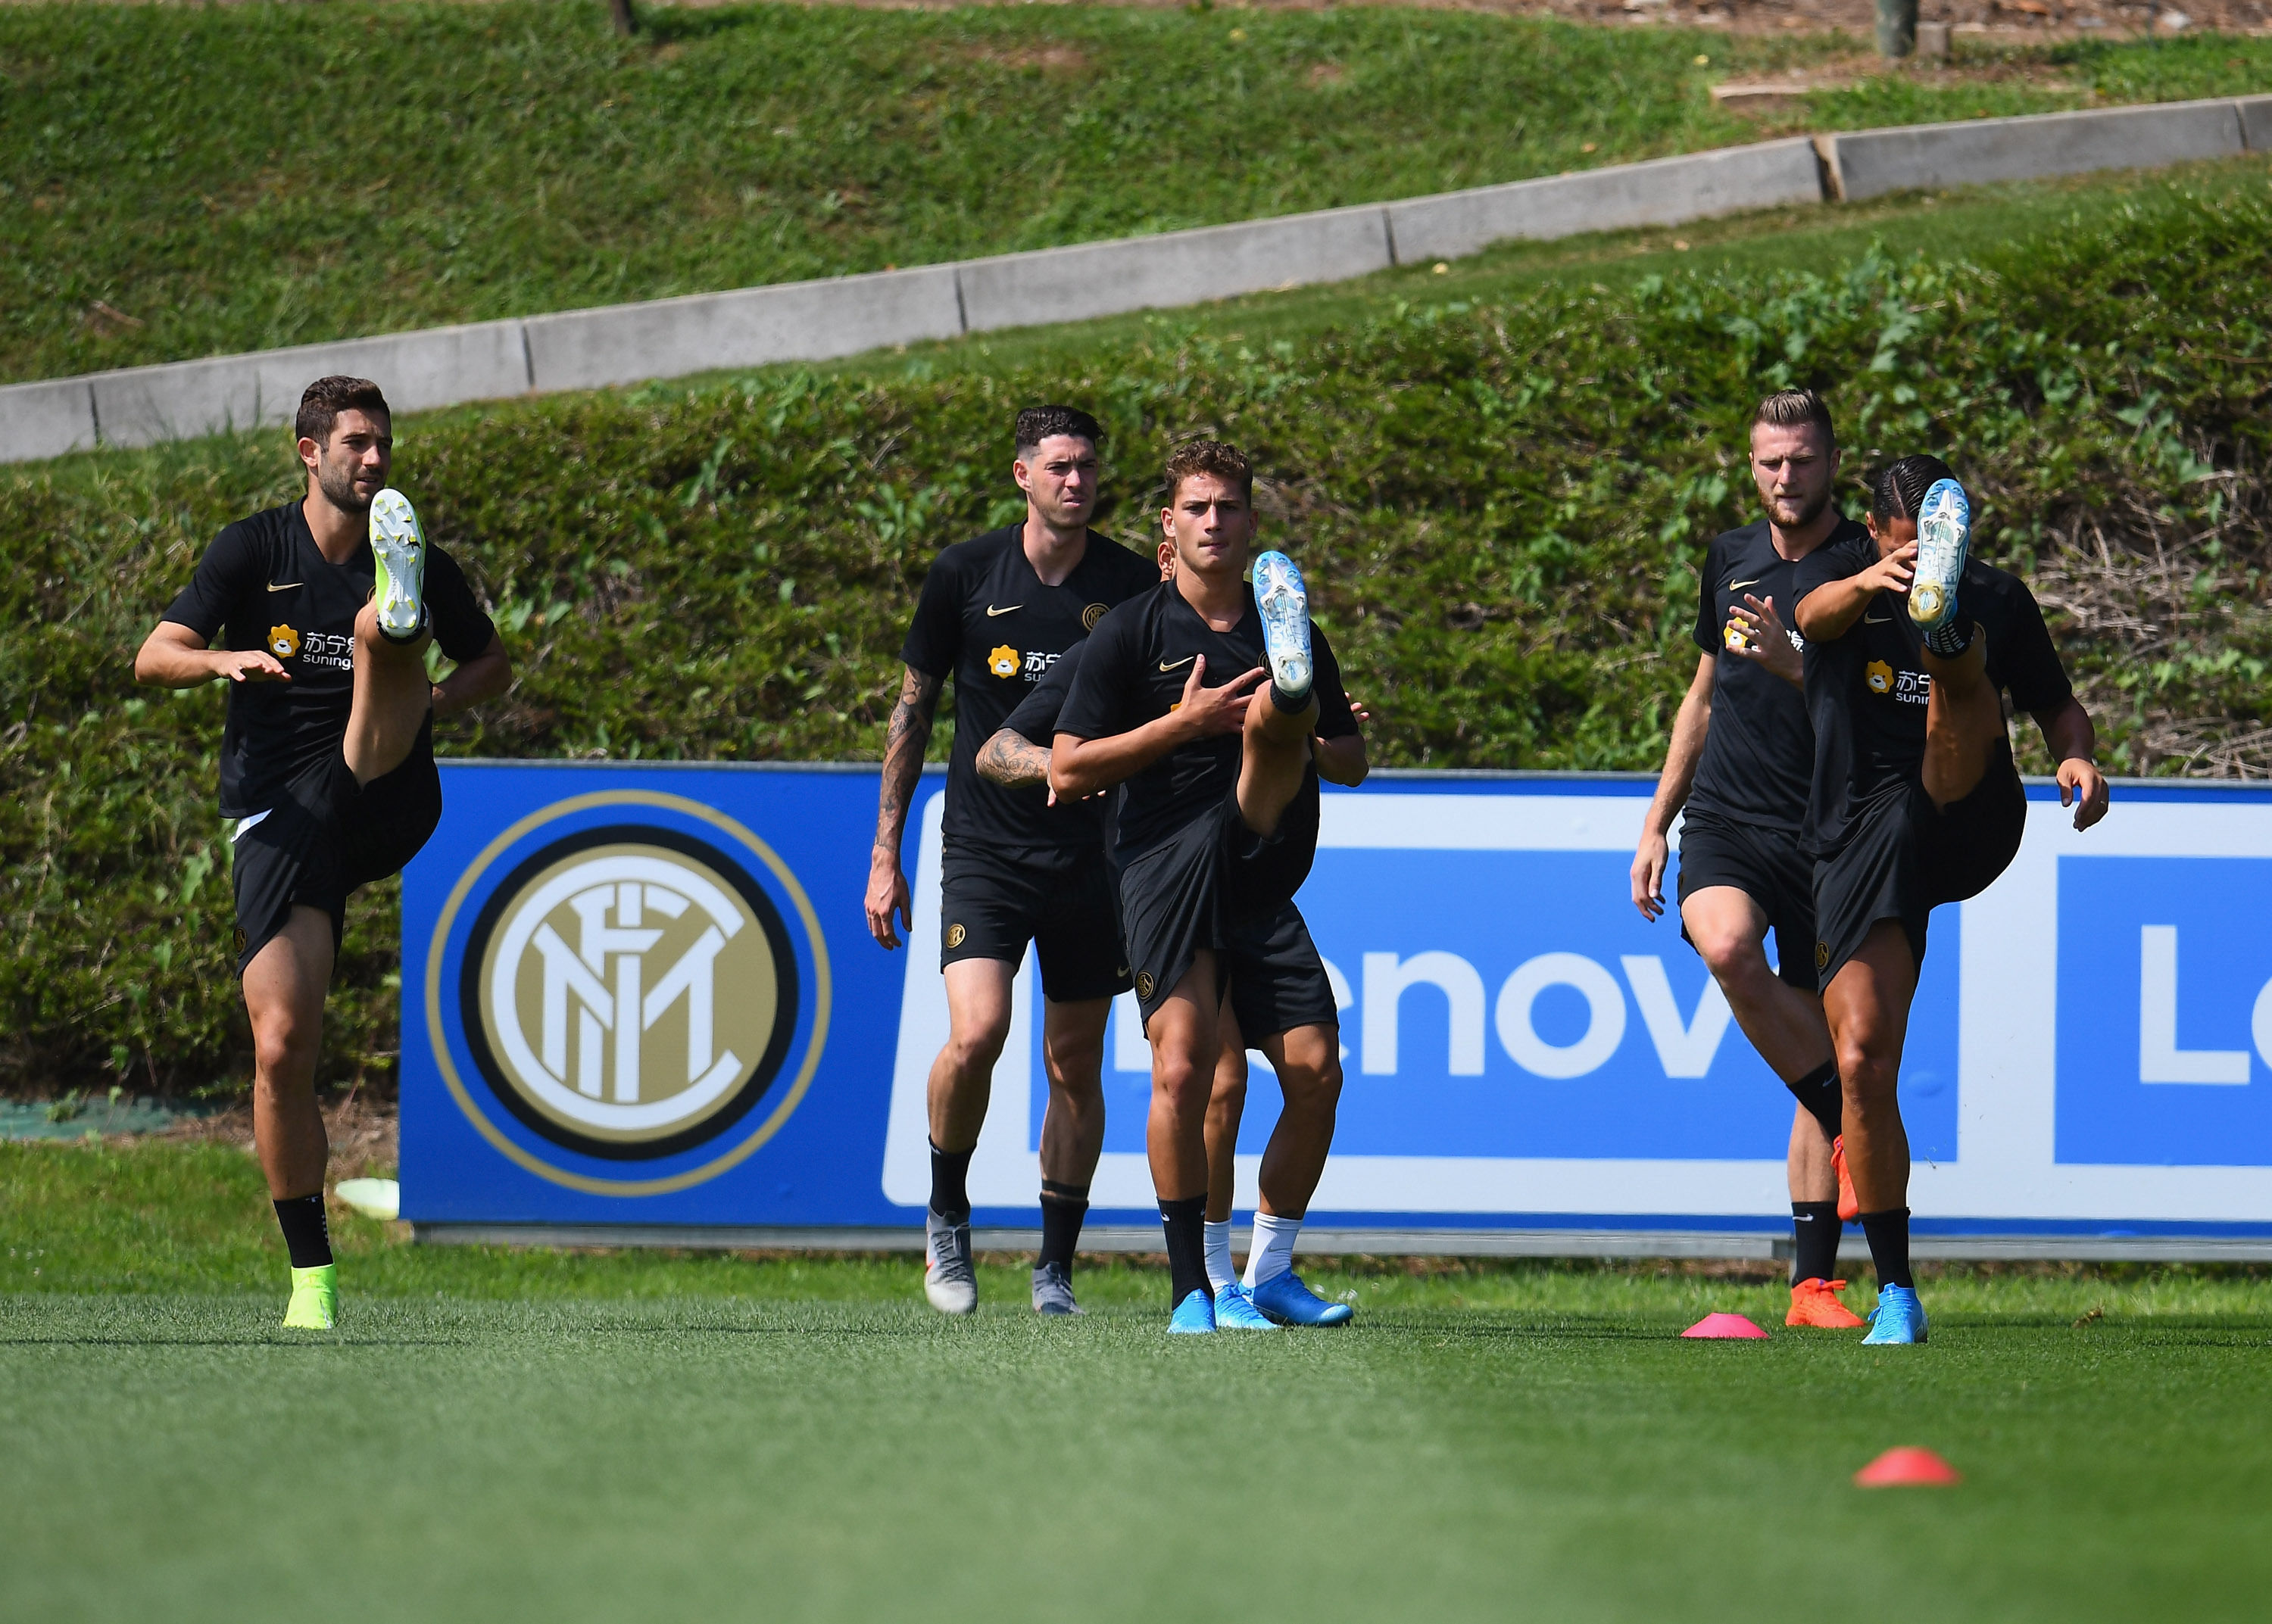 The team hard at work ahead of Inter vs. Lecce